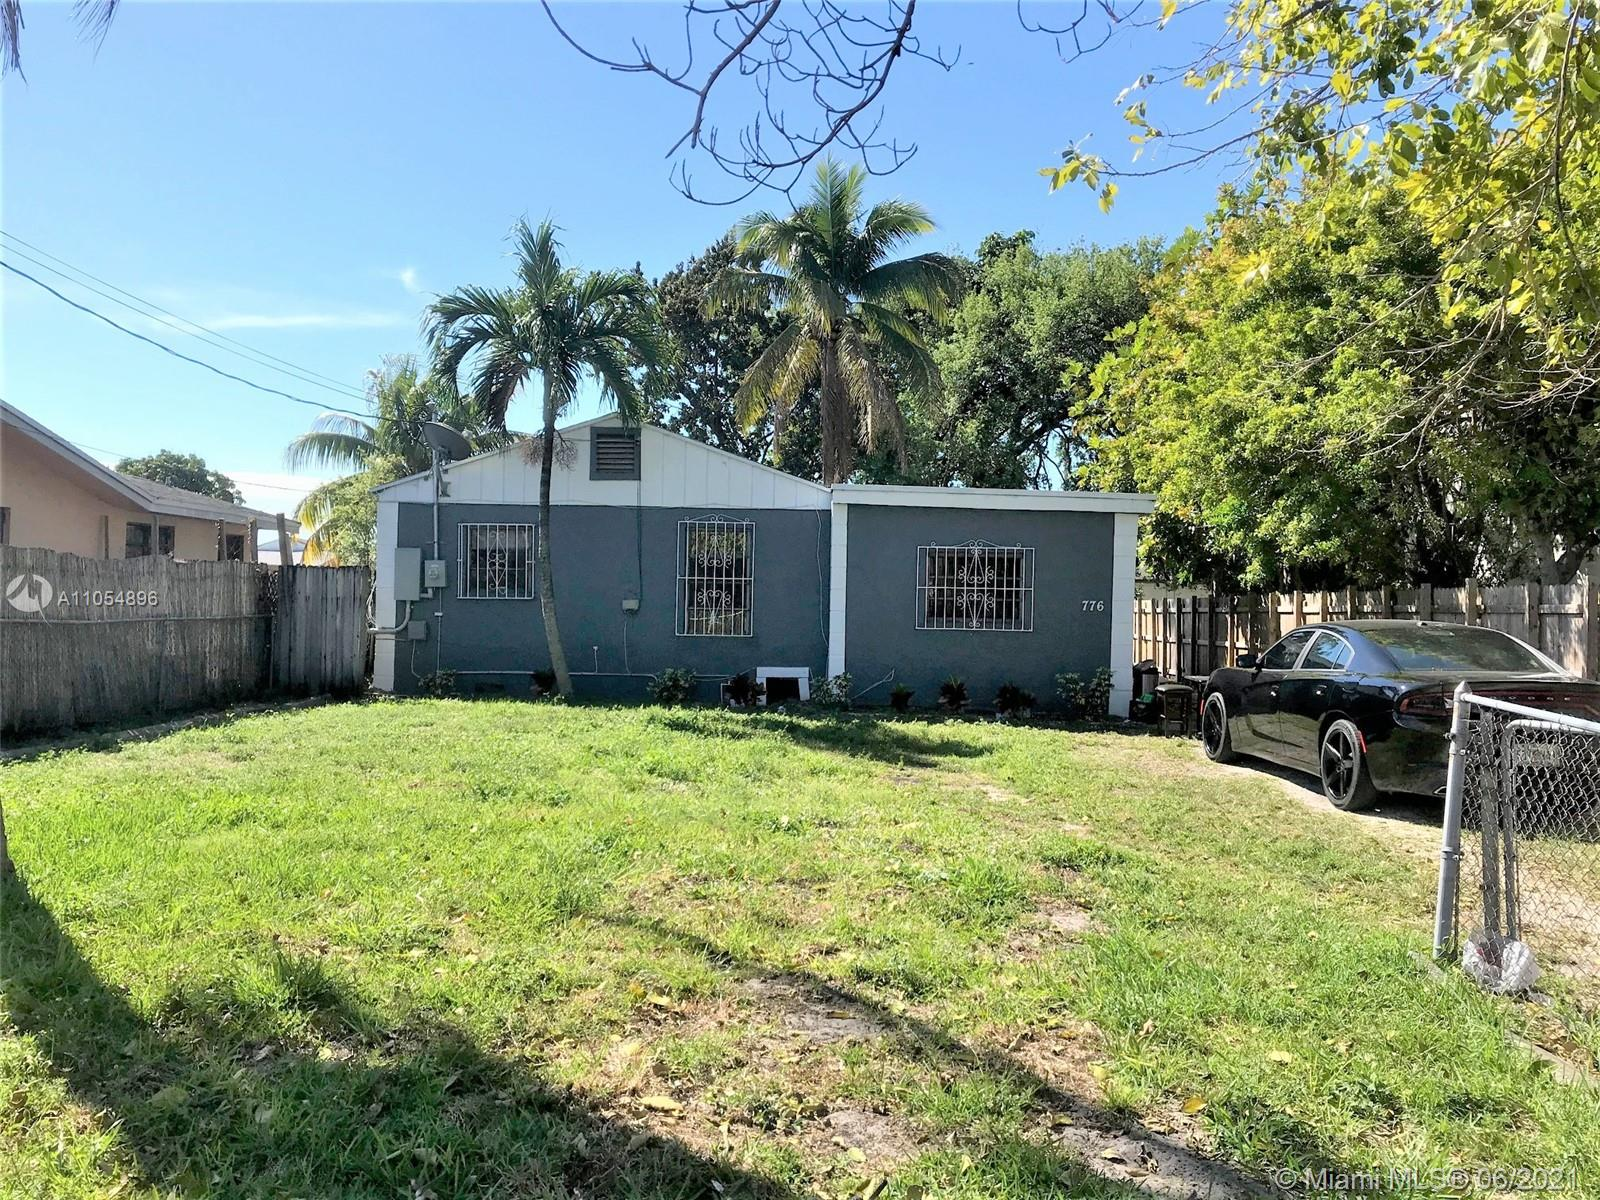 """3/2 SFH located in """"Opportunity Zone"""" with lots of potential , central A/C, large yard, across from Police Department. Section 8 Tenants, please do not disturb tenants, by appointment only."""